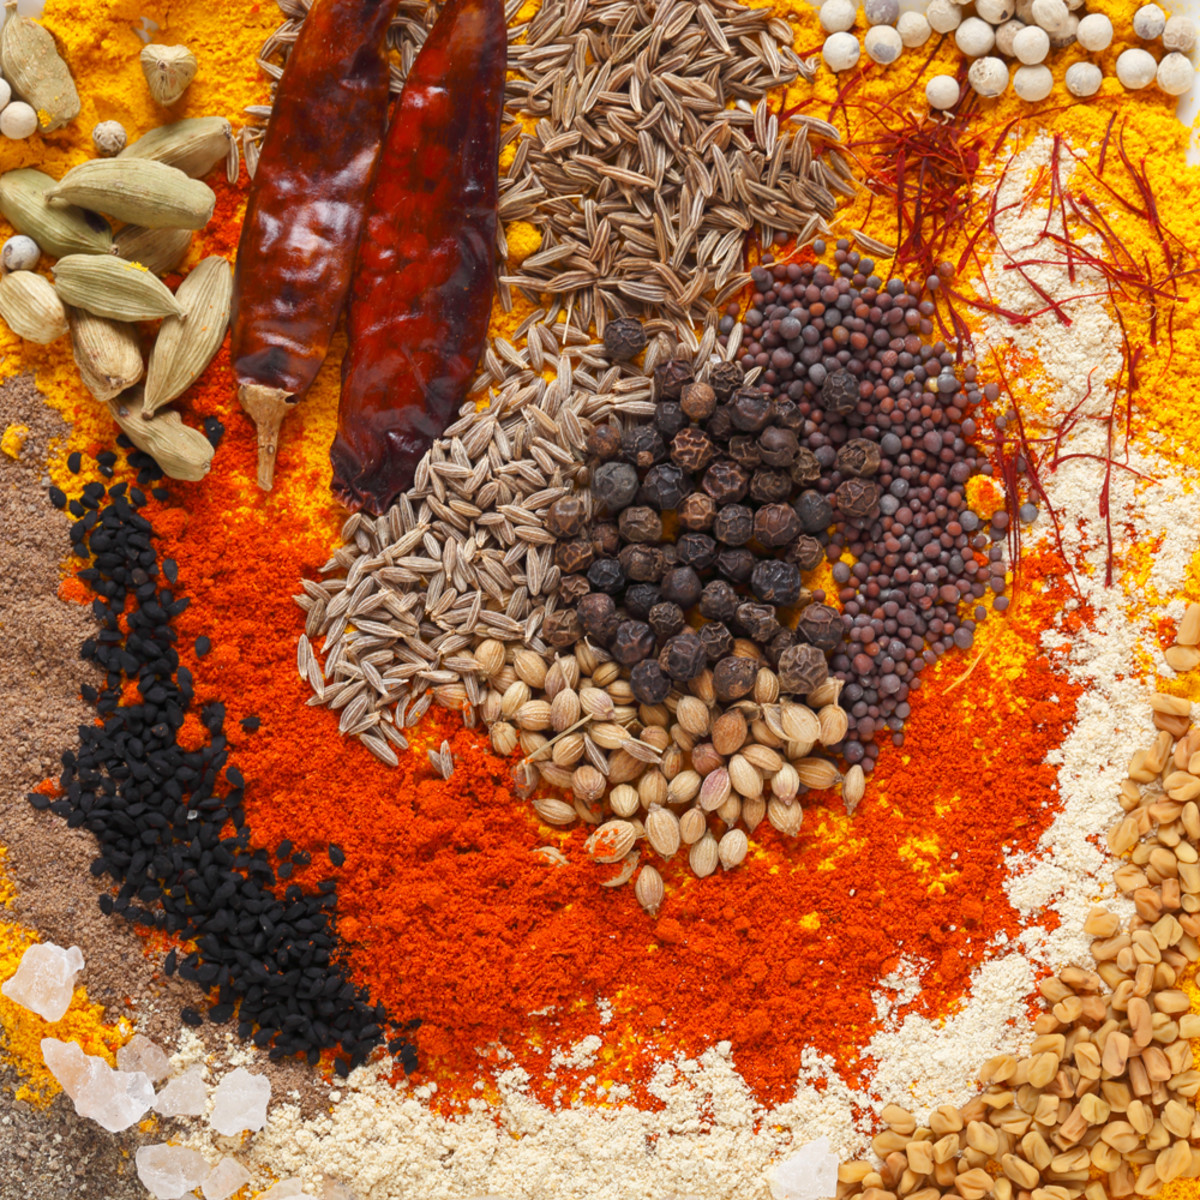 Curry spices: Black pepper, coriander seeds, black mustard seeds, cumin seeds; dried chillies, chilli powder, caraway seeds, saffron strands, white peppercorns, turmeric powder, fenugreek powder and seeds. Image:  © Paul_Cowan - Depositphotos.com